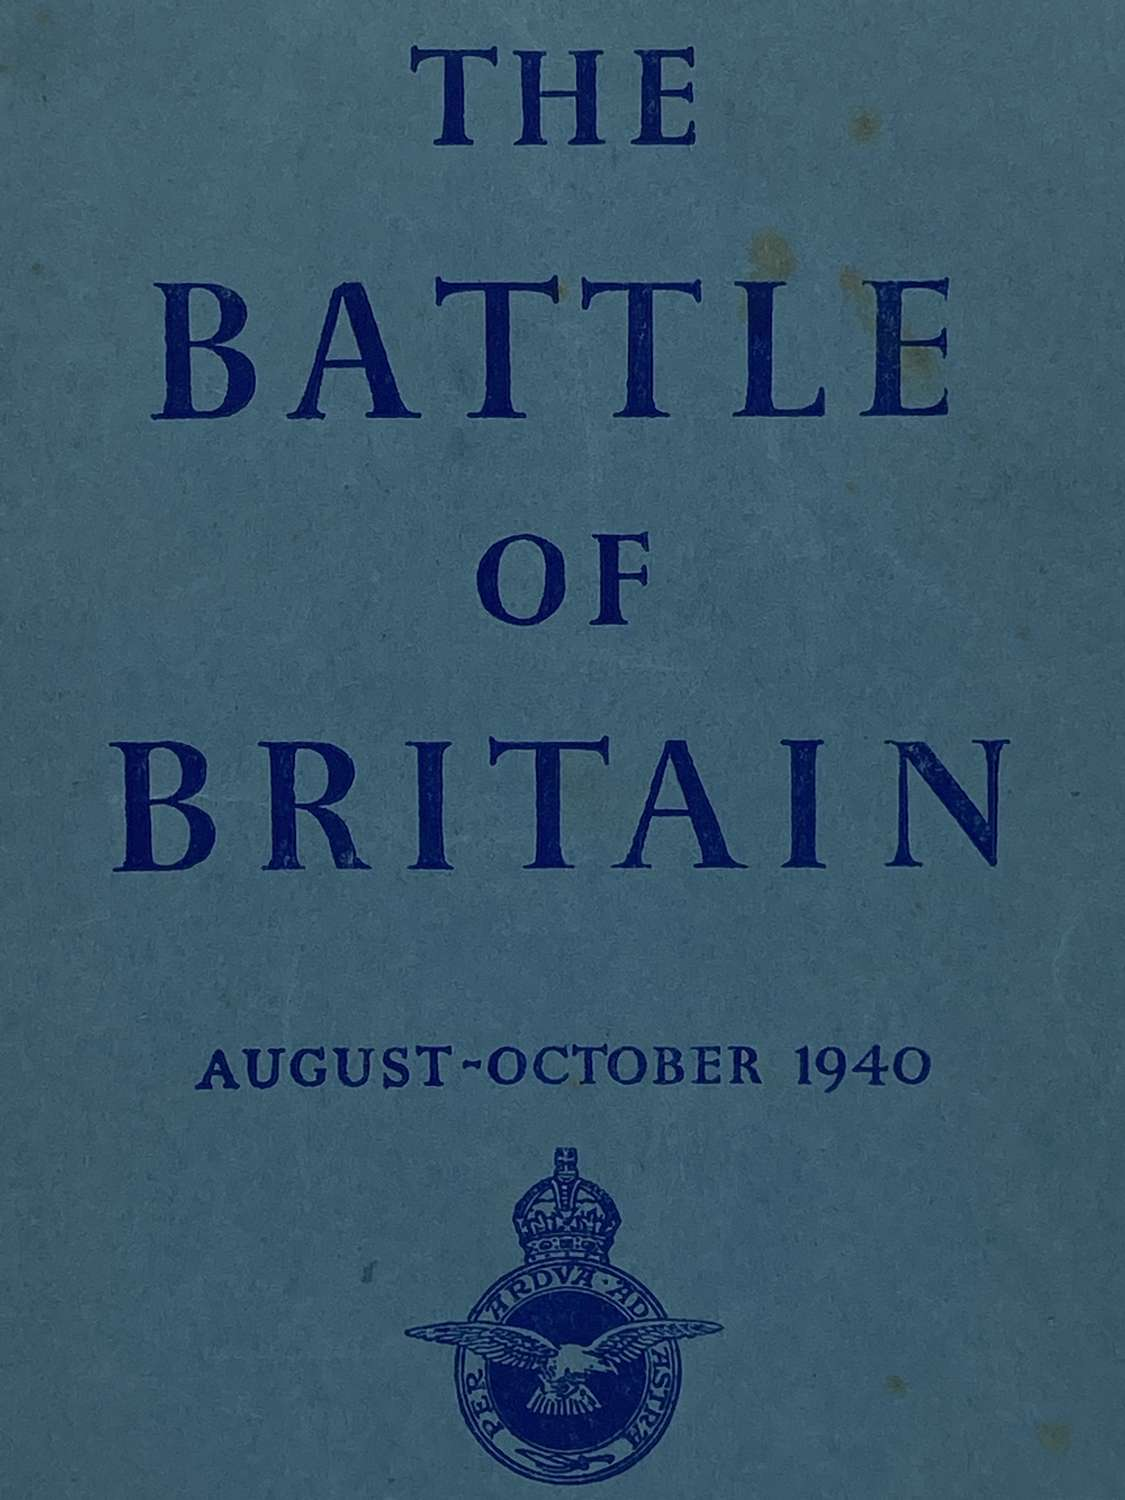 Ww2 1941 Battle Of Britian Air Ministry Booklet